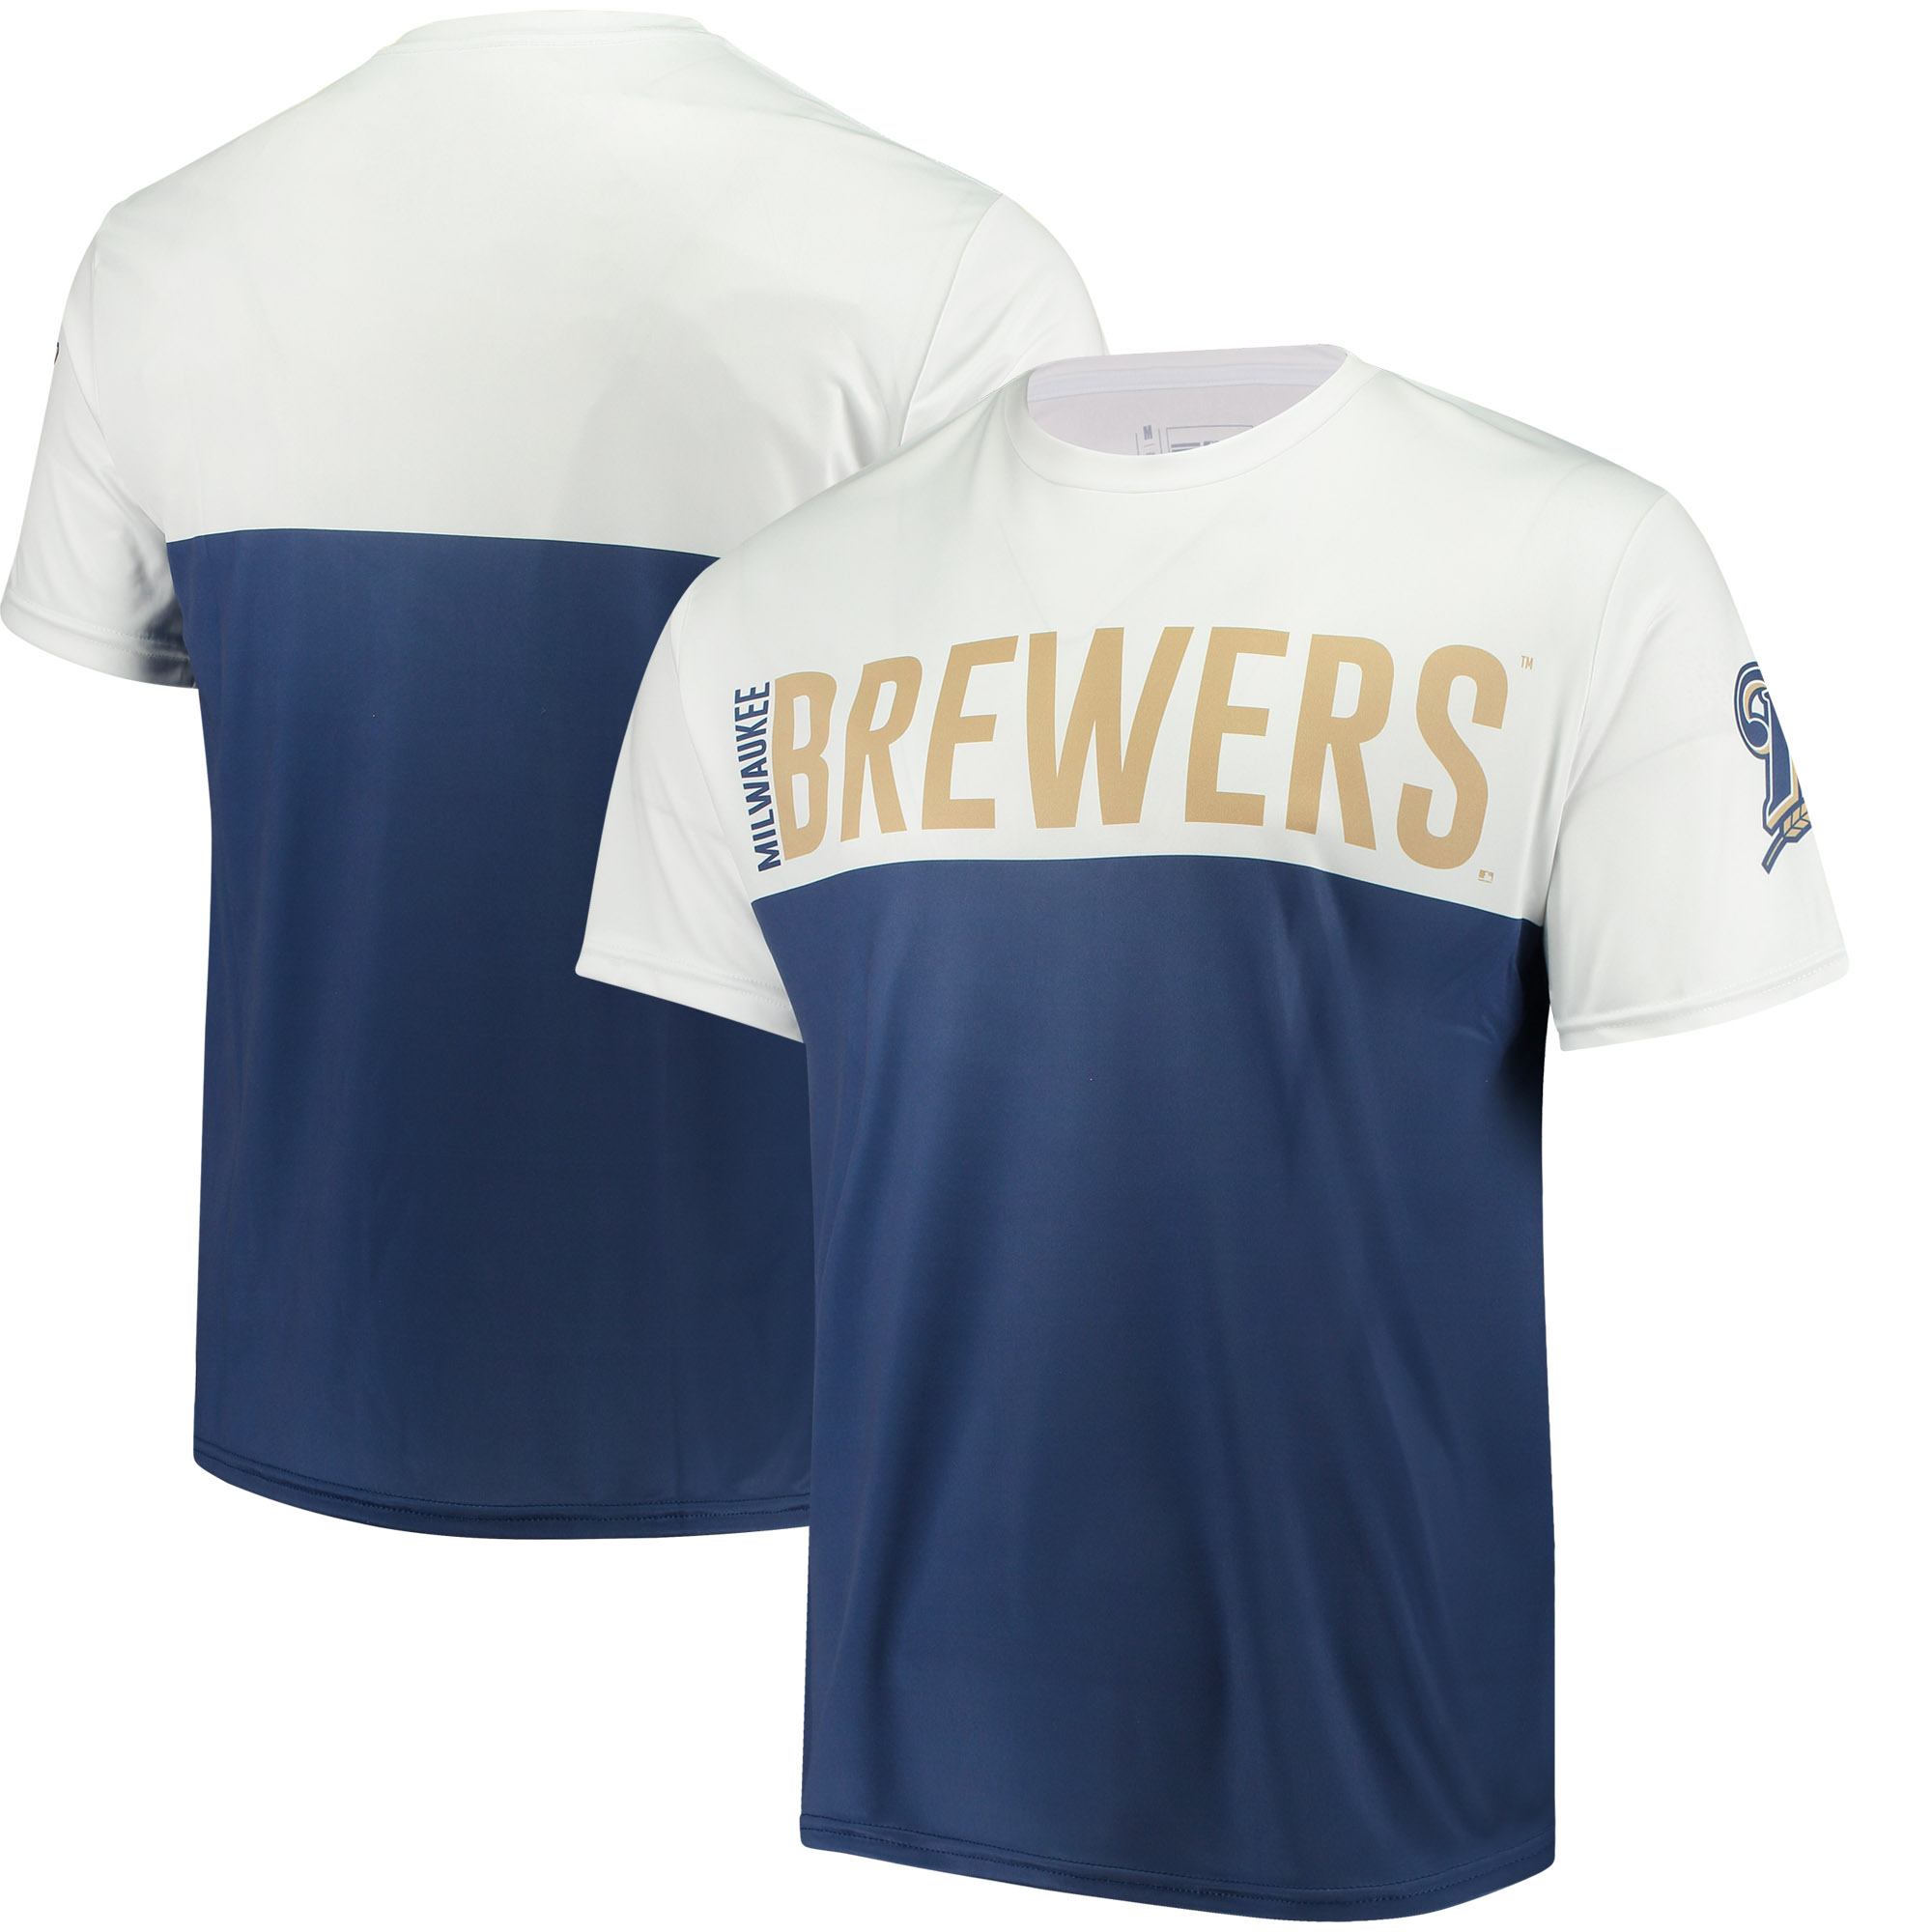 Milwaukee Brewers Colorblock Sublimated T-Shirt - Tan